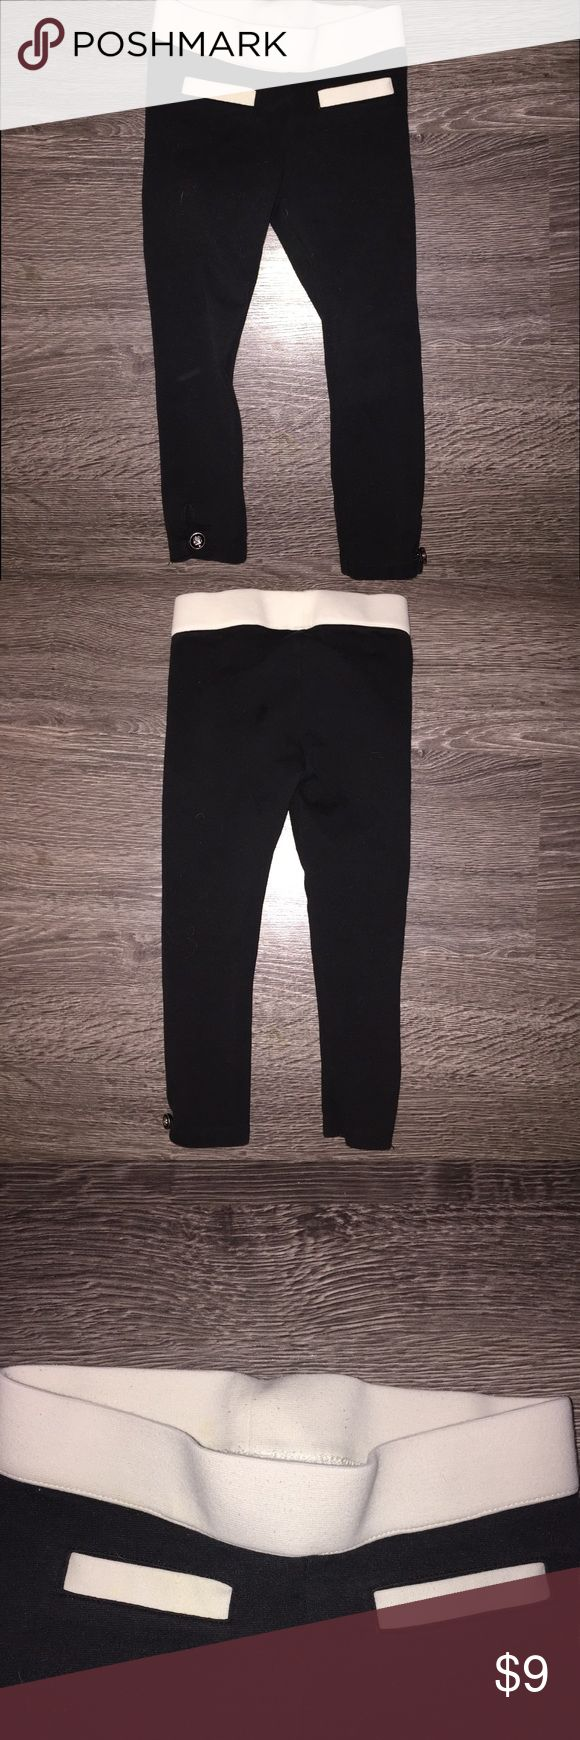 Janie & Jack Black and white girls pants thicker legging type pre loved has the little fuzzies on waist band shown in picture, size 3 Janie and Jack Bottoms